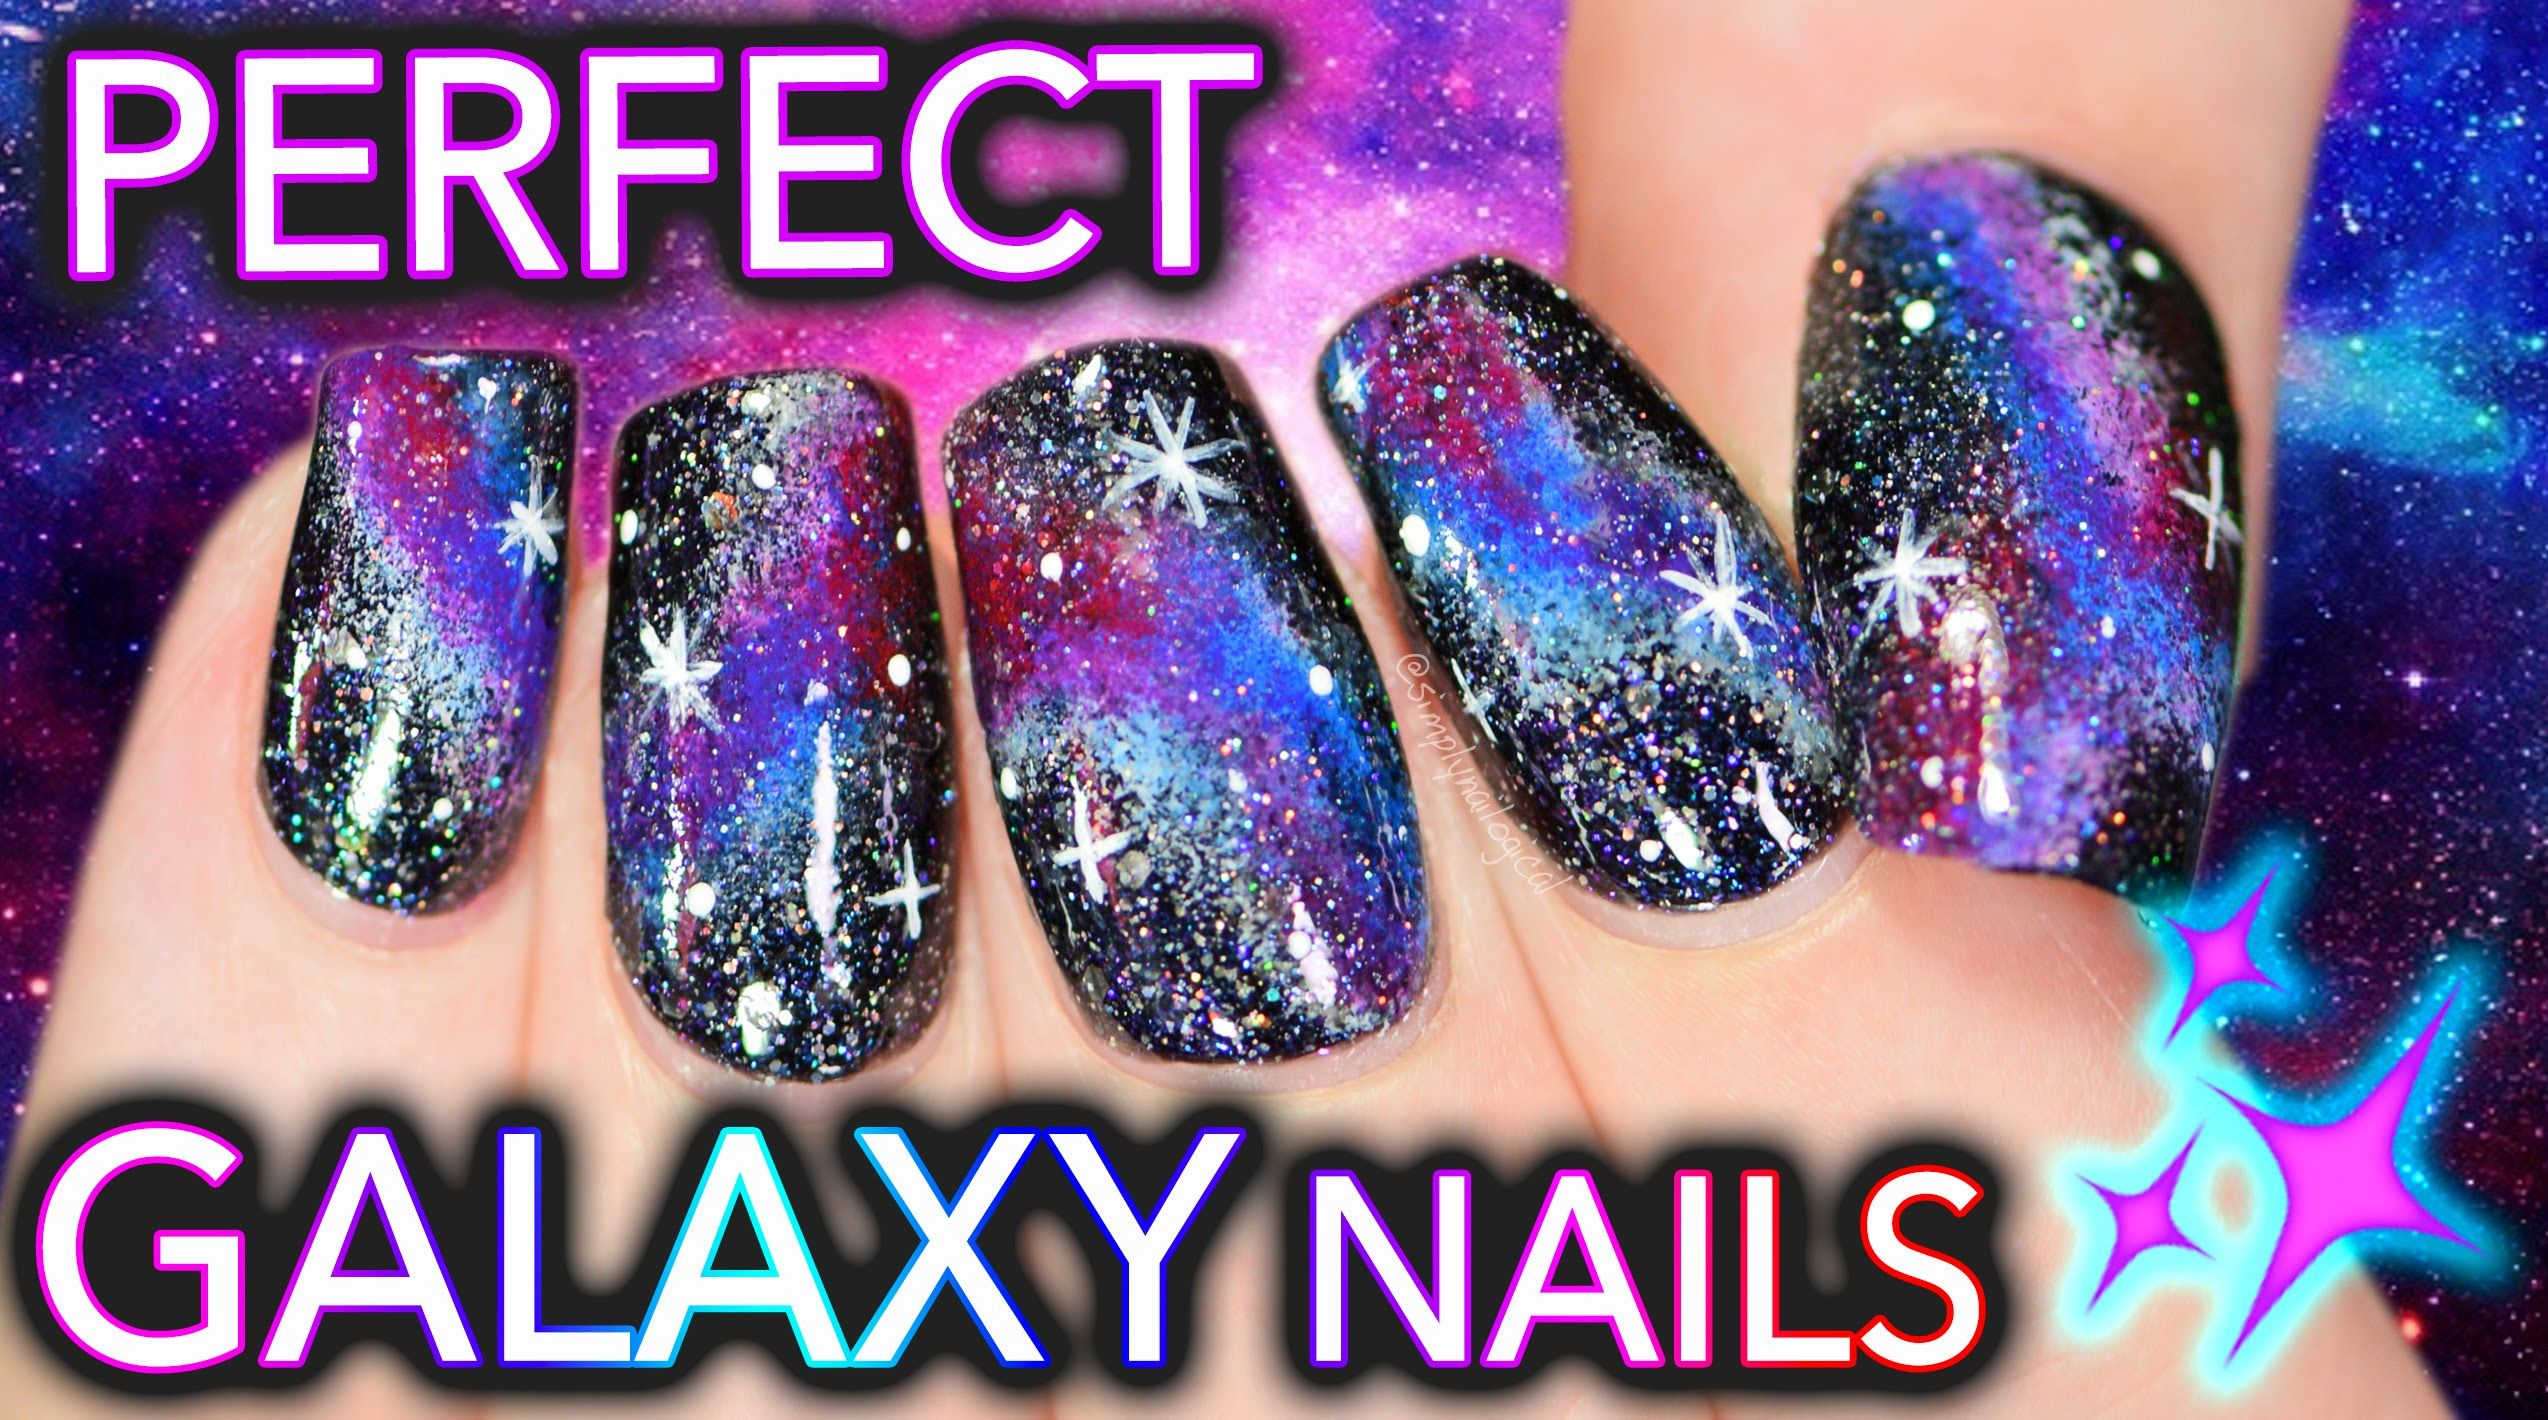 The Fault in Your Galaxy Nails | Get PERFECT DIY Galaxy Nails ...